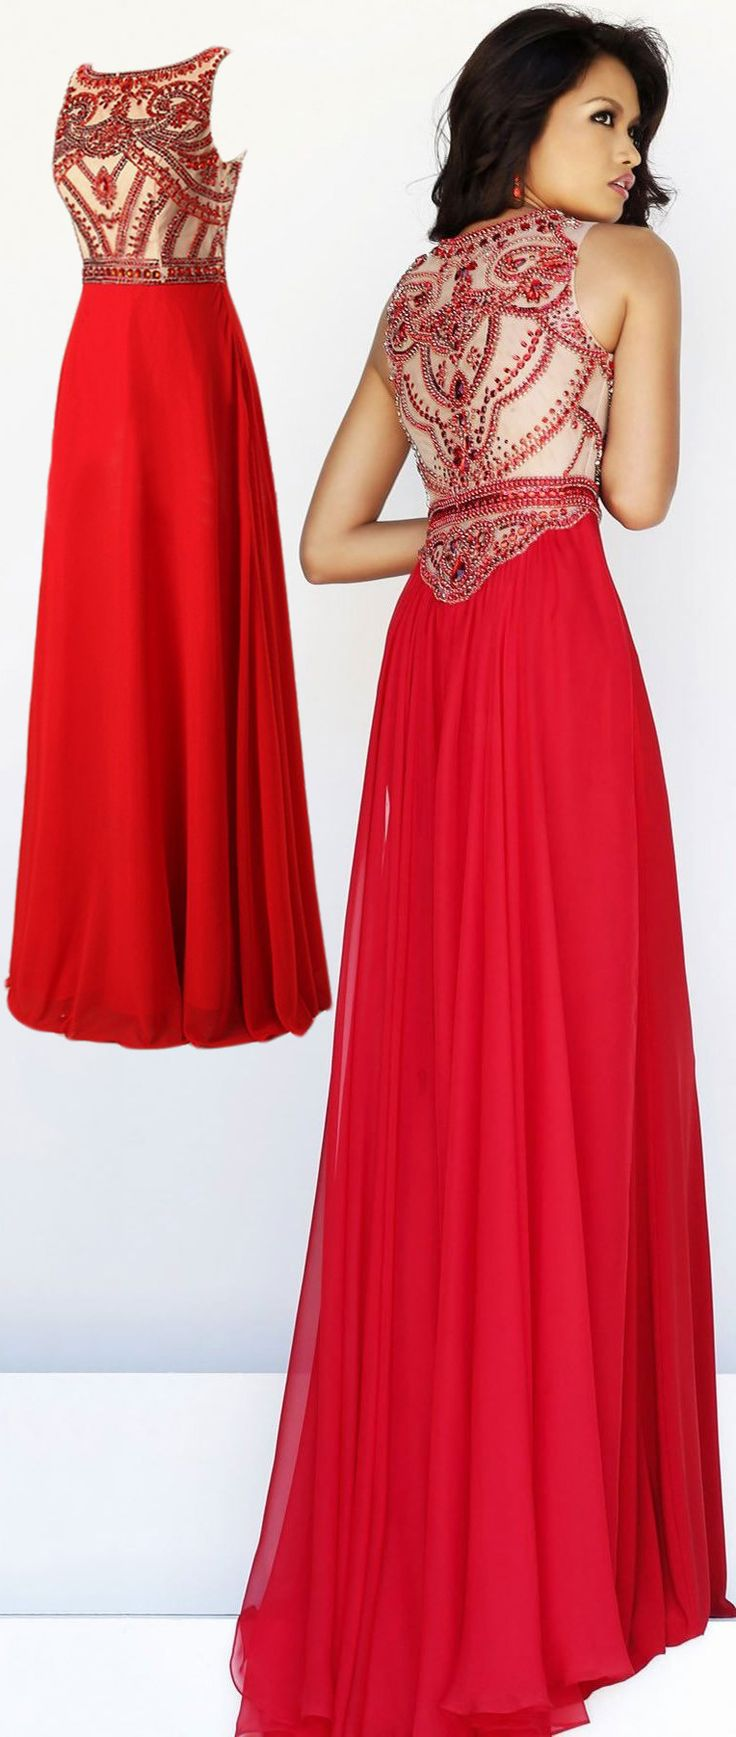 Sexy Beading Prom Dress, Backless Floor-length Long Prom Dress, Scoop Beaded Prom Dress Homecoming Dress Evening Party Dress Formal Dress,red evening dresses,backless evening dresses,cute prom dress